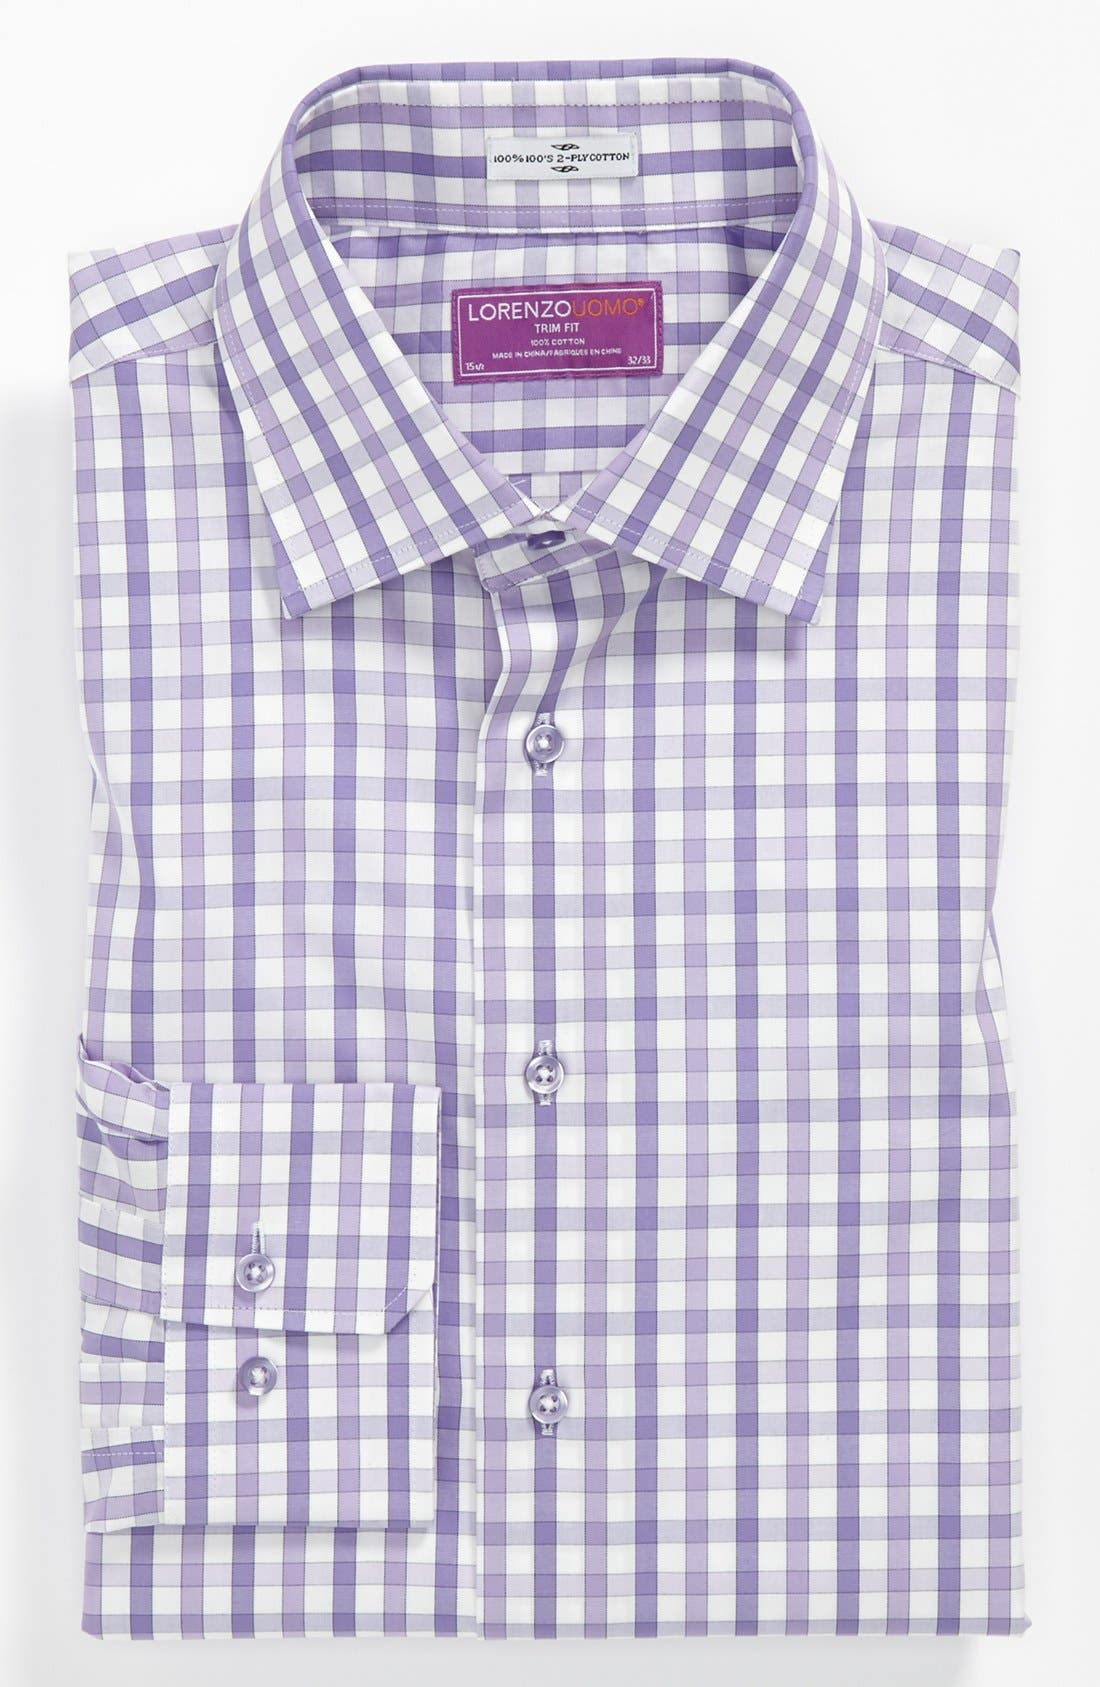 Alternate Image 1 Selected - Lorenzo Uomo Trim Fit Dress Shirt